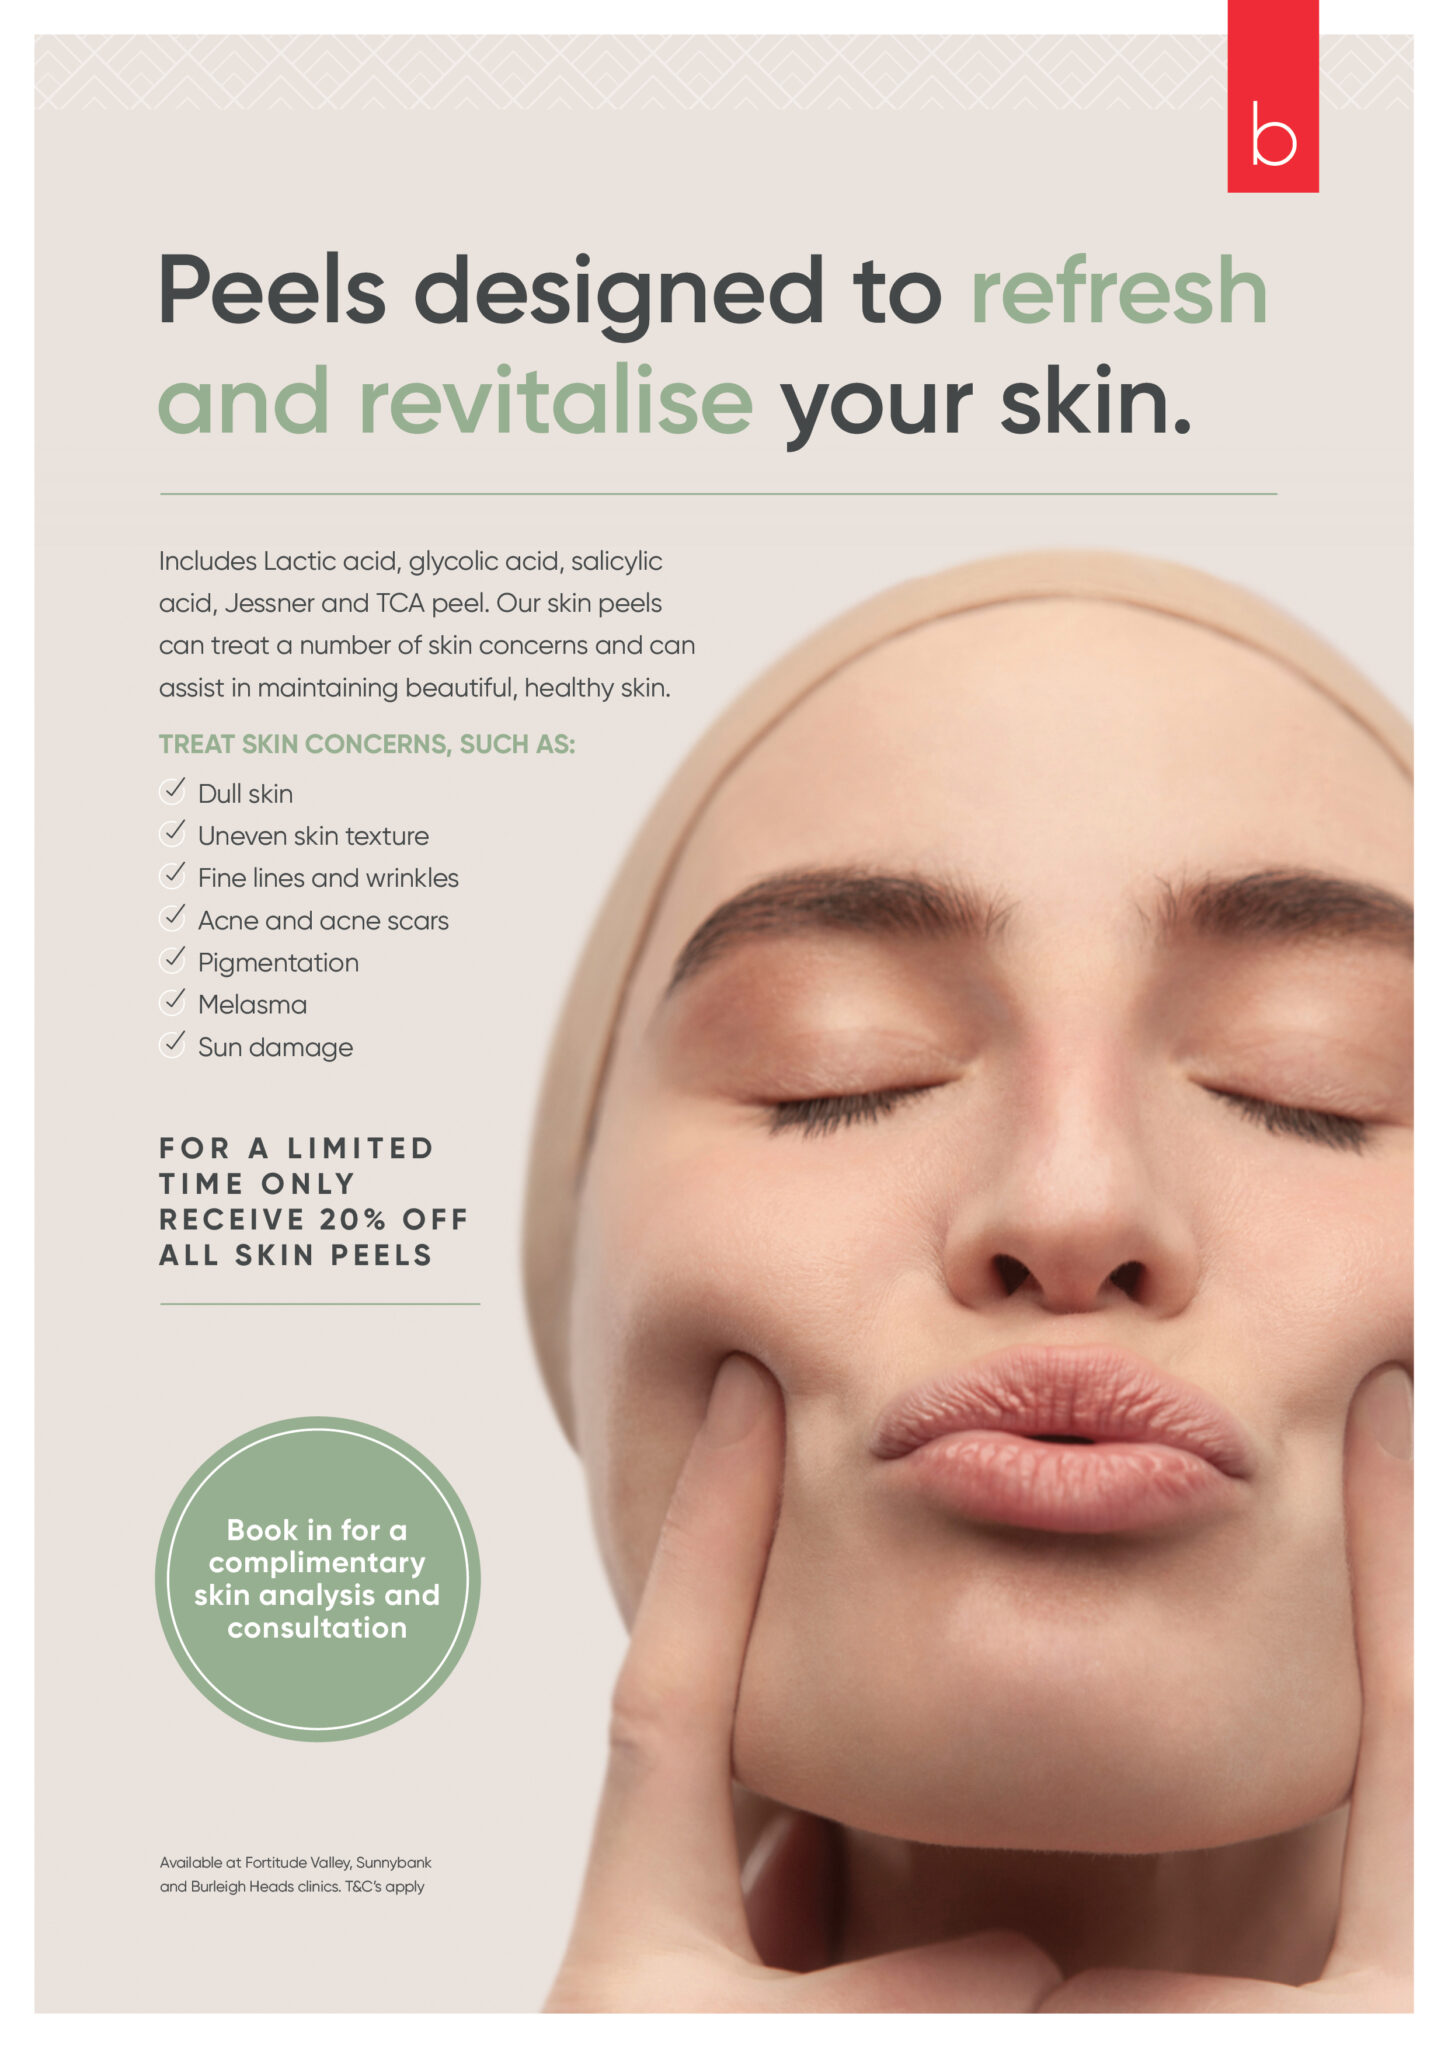 peels designed to refresh and revitalise your skin